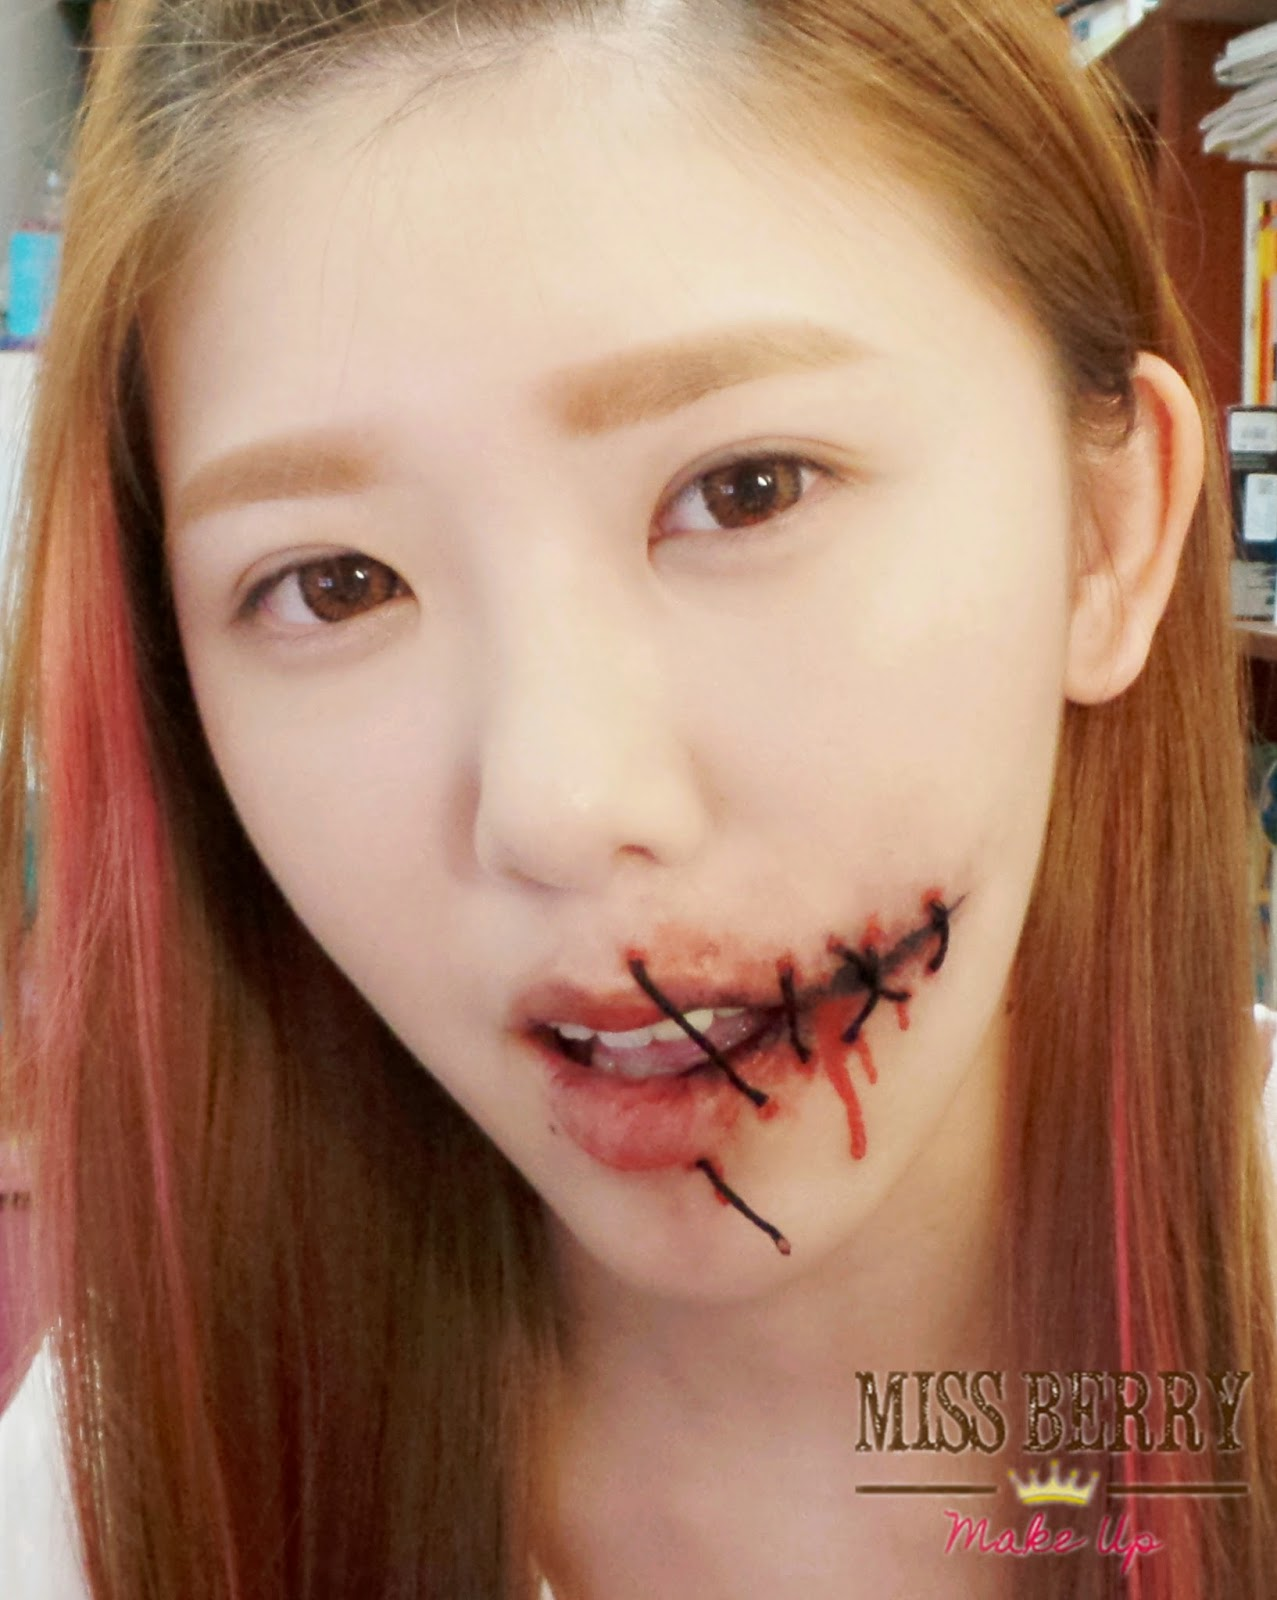 e l l y b e r r y halloween make up tutorial stitched mouth